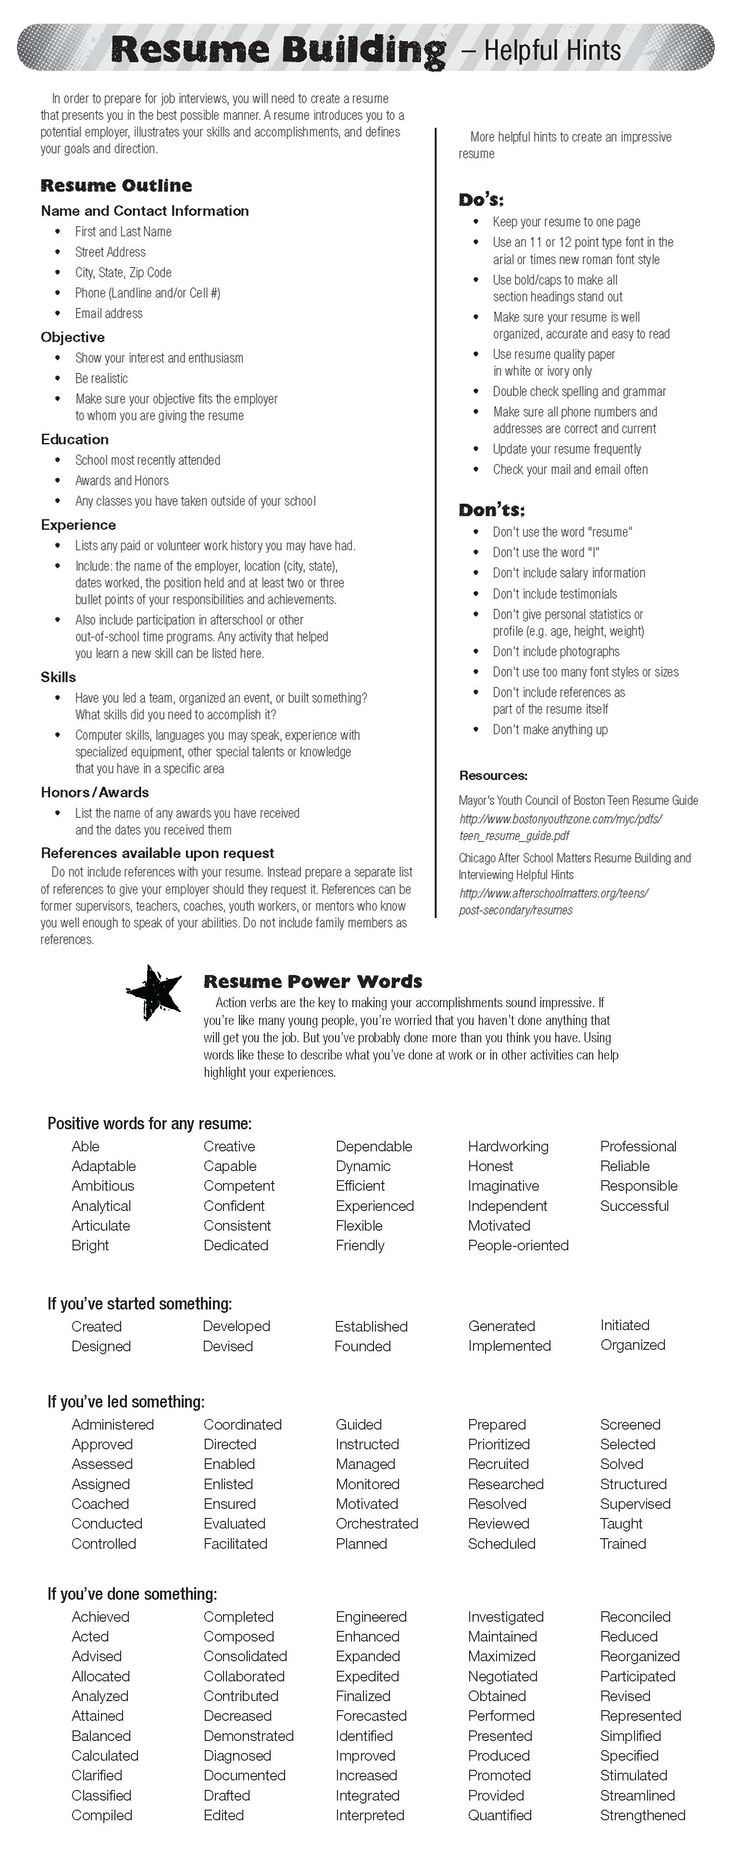 Opposenewapstandardsus  Prepossessing  Ideas About Resume On Pinterest  Cv Format Resume Cv And  With Outstanding  Ideas About Resume On Pinterest  Cv Format Resume Cv And Resume Templates With Captivating Monster Resumes Also How To Do A Job Resume In Addition Graphic Design Resume Examples And Stylist Resume As Well As Beautiful Resumes Additionally Best Resume Words From Pinterestcom With Opposenewapstandardsus  Outstanding  Ideas About Resume On Pinterest  Cv Format Resume Cv And  With Captivating  Ideas About Resume On Pinterest  Cv Format Resume Cv And Resume Templates And Prepossessing Monster Resumes Also How To Do A Job Resume In Addition Graphic Design Resume Examples From Pinterestcom